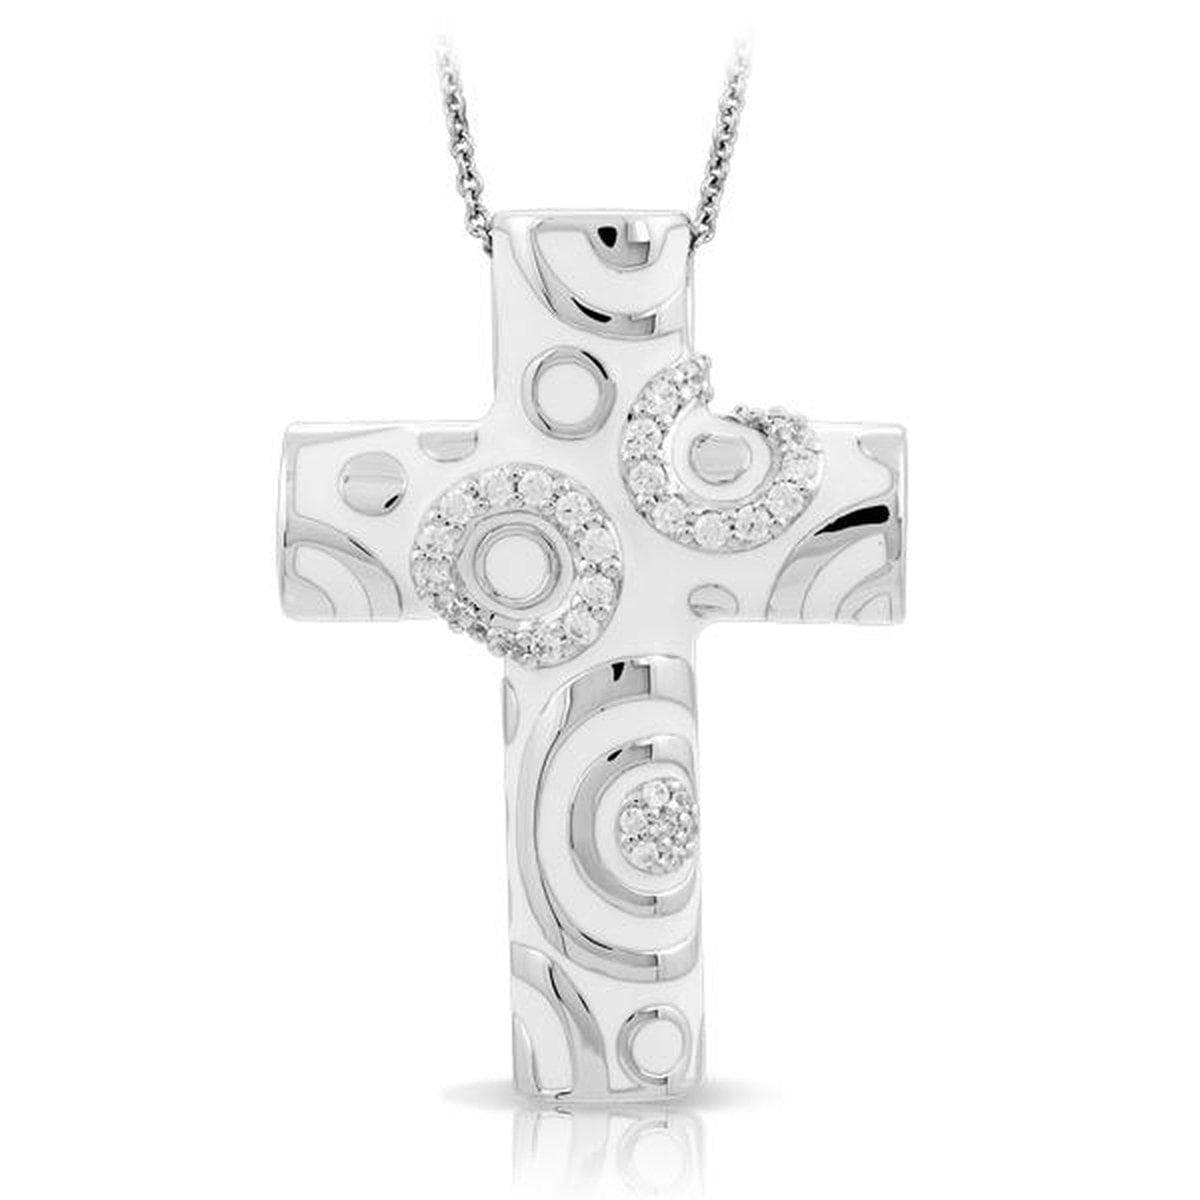 Galaxy White Cross Pendant-Belle Etoile-Renee Taylor Gallery